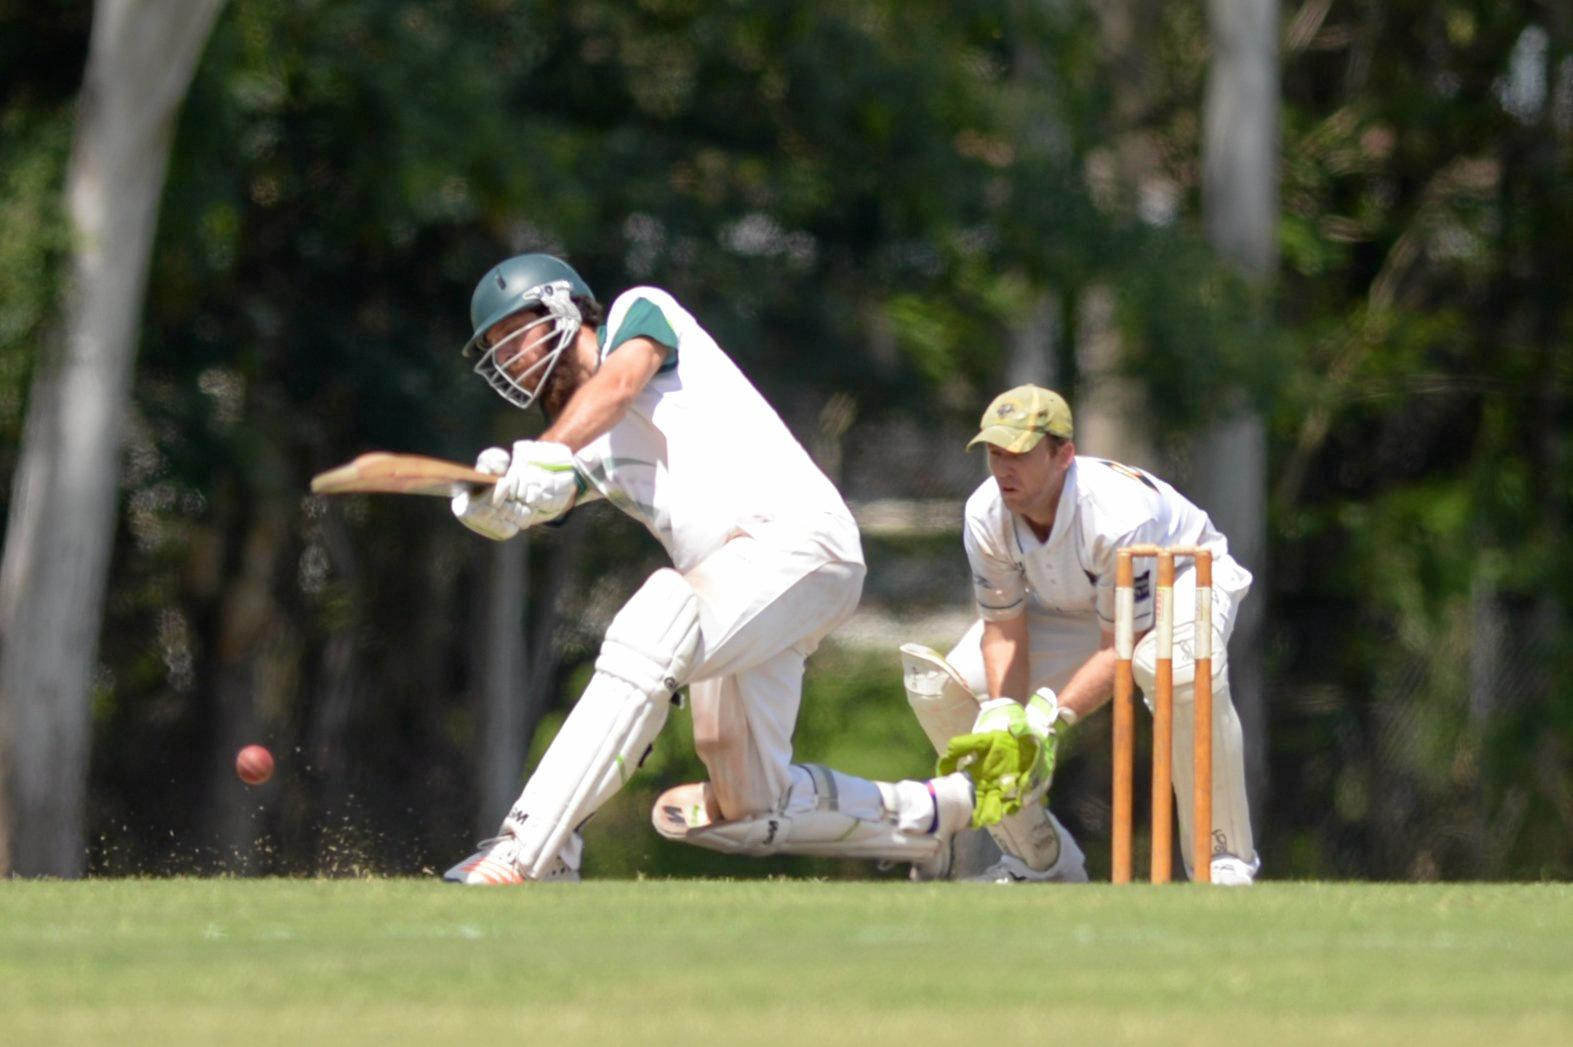 FULL FLIGHT: Frenchville's Luke Taylor scored an unbeaten 24 in his team's win over Gracemere in the opening game of the Rockhampton A-grade grand final series on Saturday.